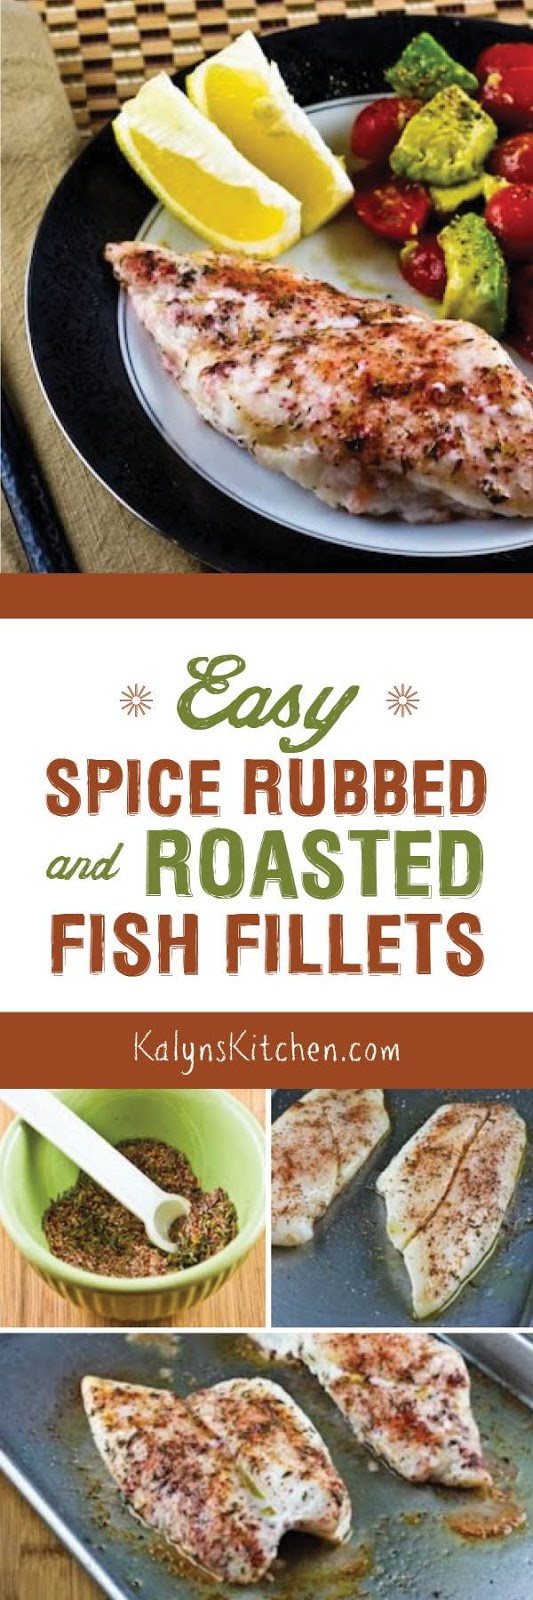 Easy spice rubbed and roasted fish fillets kalyn 39 s kitchen for Low carb fish recipes